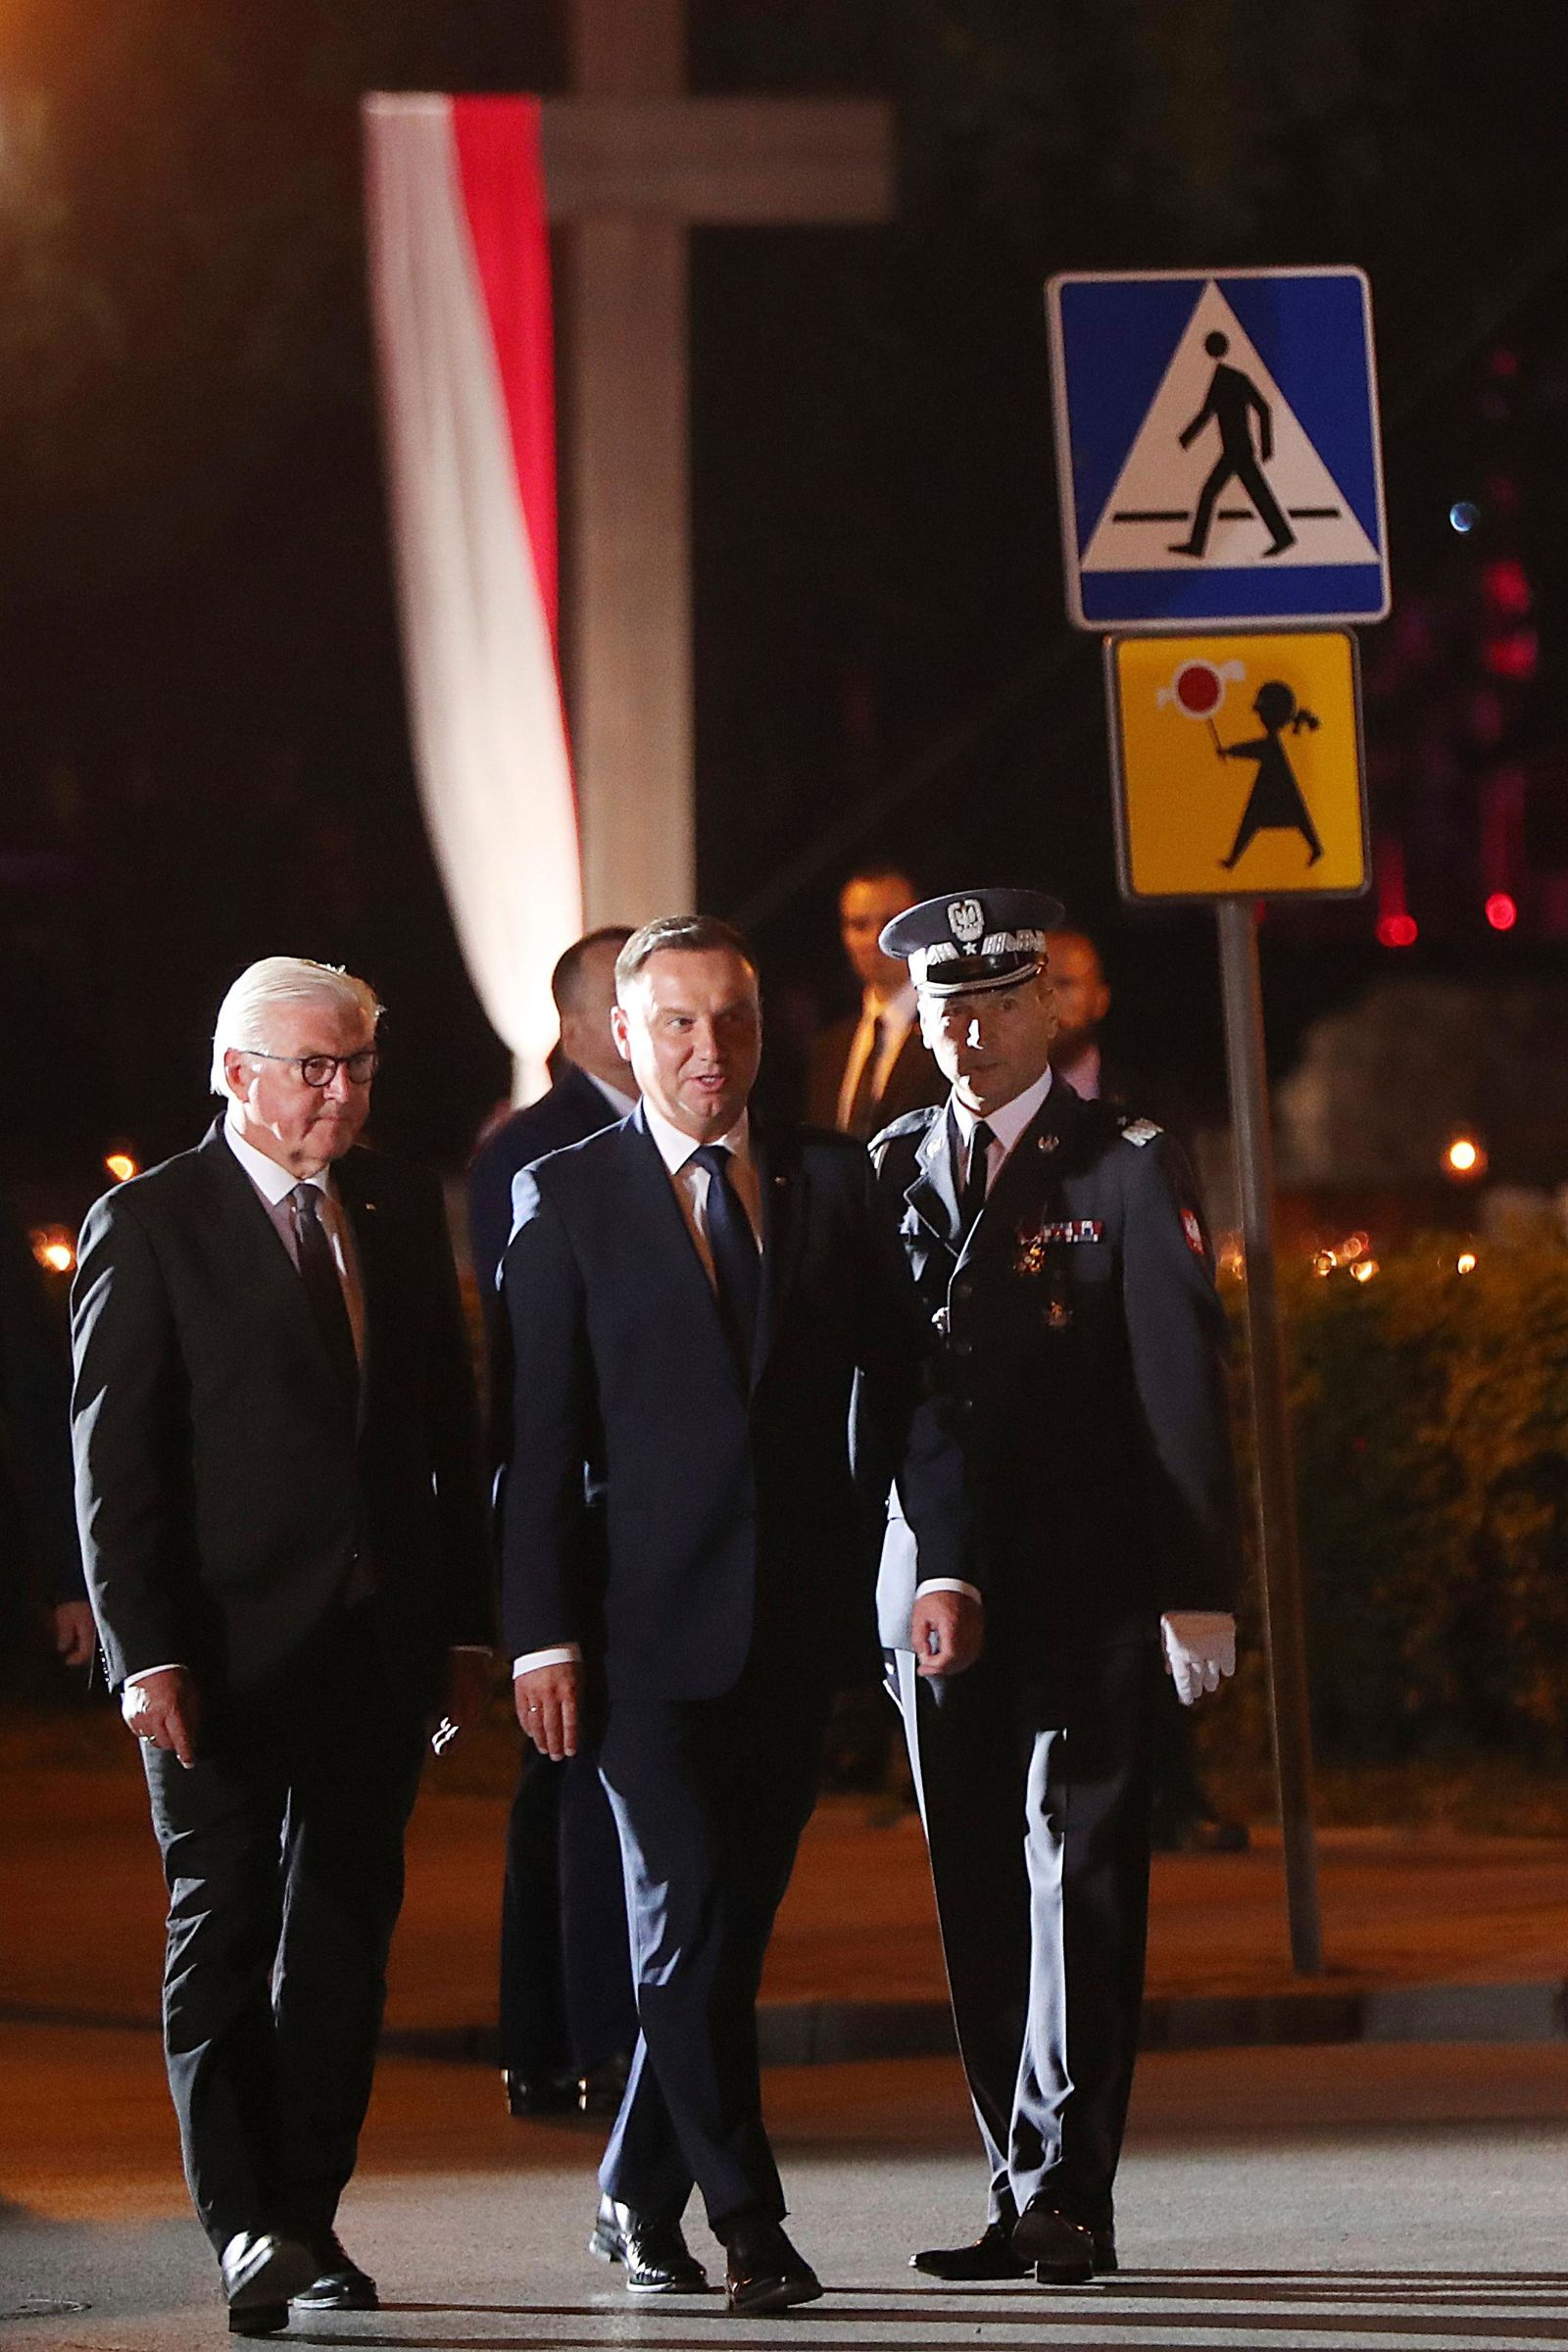 German President Frank-Walter Steinmeier, left, and Polish President Andrzej Duda, center, attend a ceremony marking the 80th anniversary of the start of World War II, in Wielun, Poland, Sunday, Sept. 1, 2019. The ceremony started at 4.40 a.m., the exact hour that, according to survivors, the war's first bombs fell, killing civilians. (AP Photo/Czarek Sokolowski)